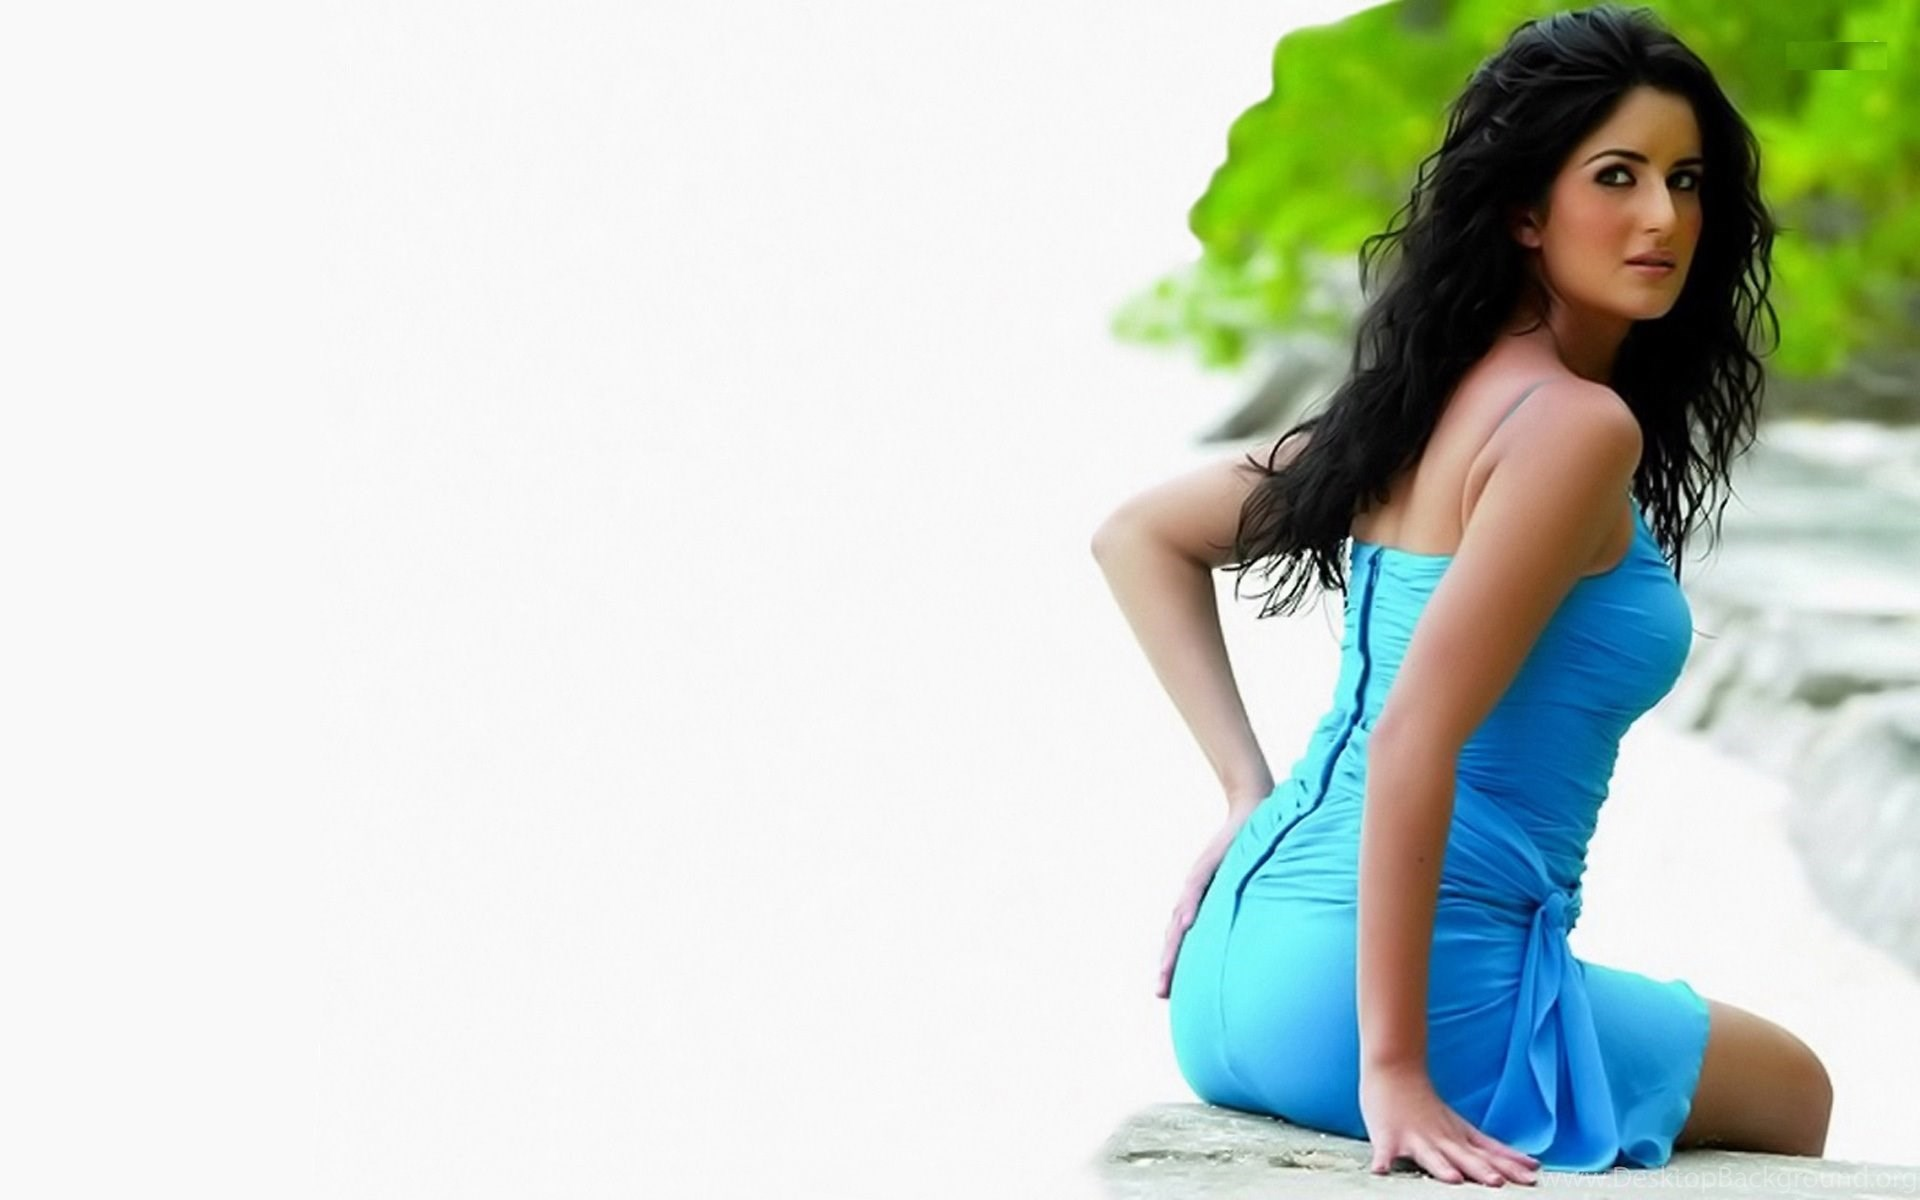 katrina kaif hot hd wallpapers, sizzling unseen pictures www